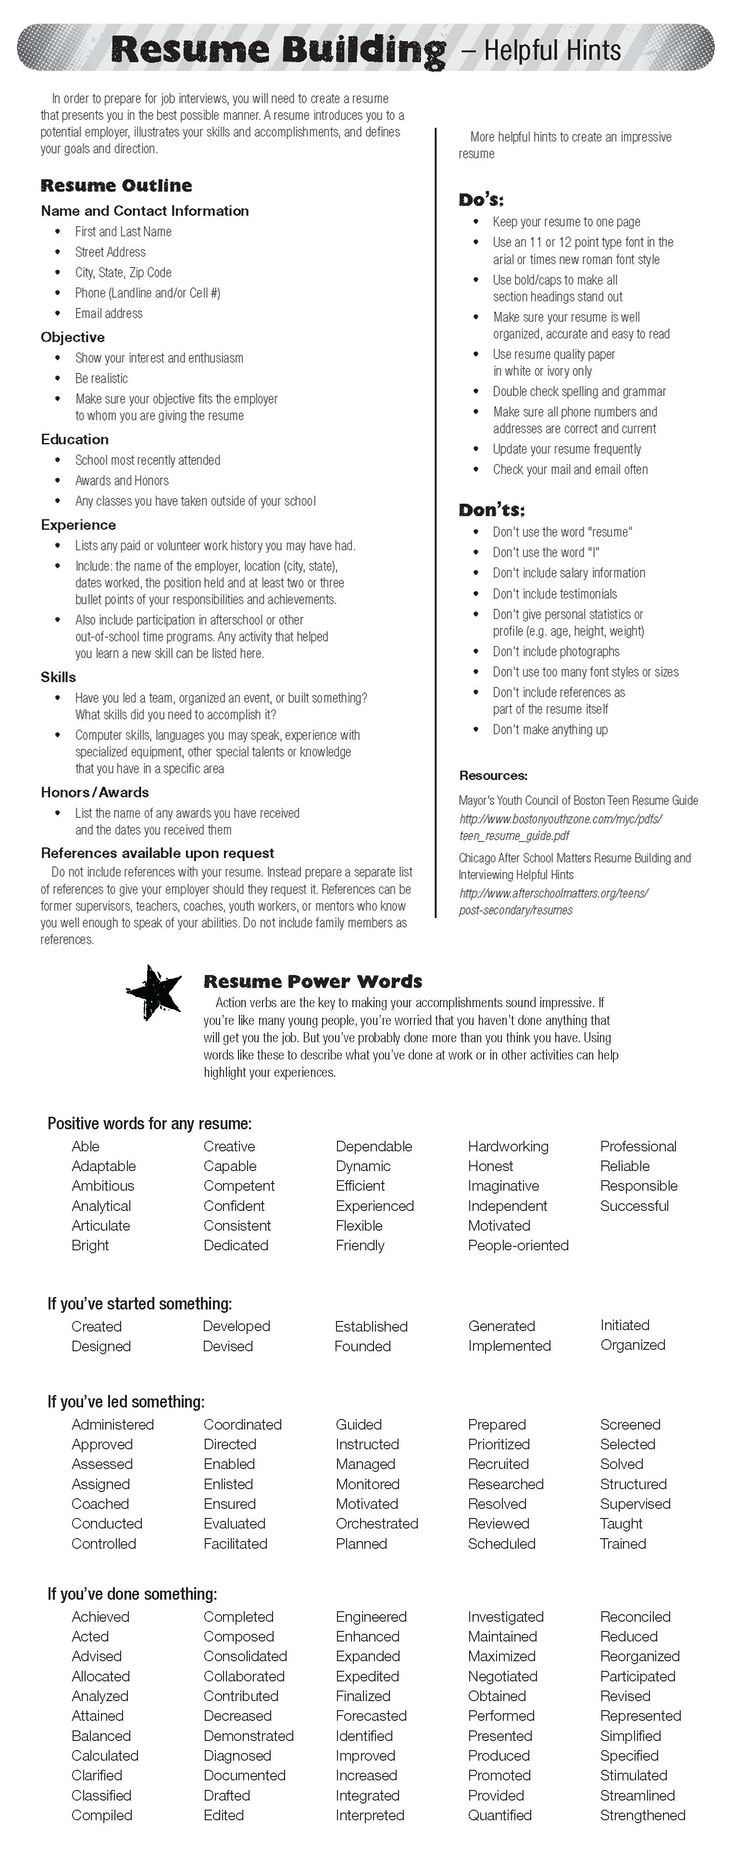 Opposenewapstandardsus  Pleasant  Ideas About Resume On Pinterest  Cv Format Resume Cv And  With Handsome  Ideas About Resume On Pinterest  Cv Format Resume Cv And Resume Templates With Delightful Fancy Resume Templates Also What Is A Objective On A Resume In Addition It Manager Resume Examples And Nice Resumes As Well As Resume Summa Cum Laude Additionally Examples Of Skills To Put On Resume From Pinterestcom With Opposenewapstandardsus  Handsome  Ideas About Resume On Pinterest  Cv Format Resume Cv And  With Delightful  Ideas About Resume On Pinterest  Cv Format Resume Cv And Resume Templates And Pleasant Fancy Resume Templates Also What Is A Objective On A Resume In Addition It Manager Resume Examples From Pinterestcom